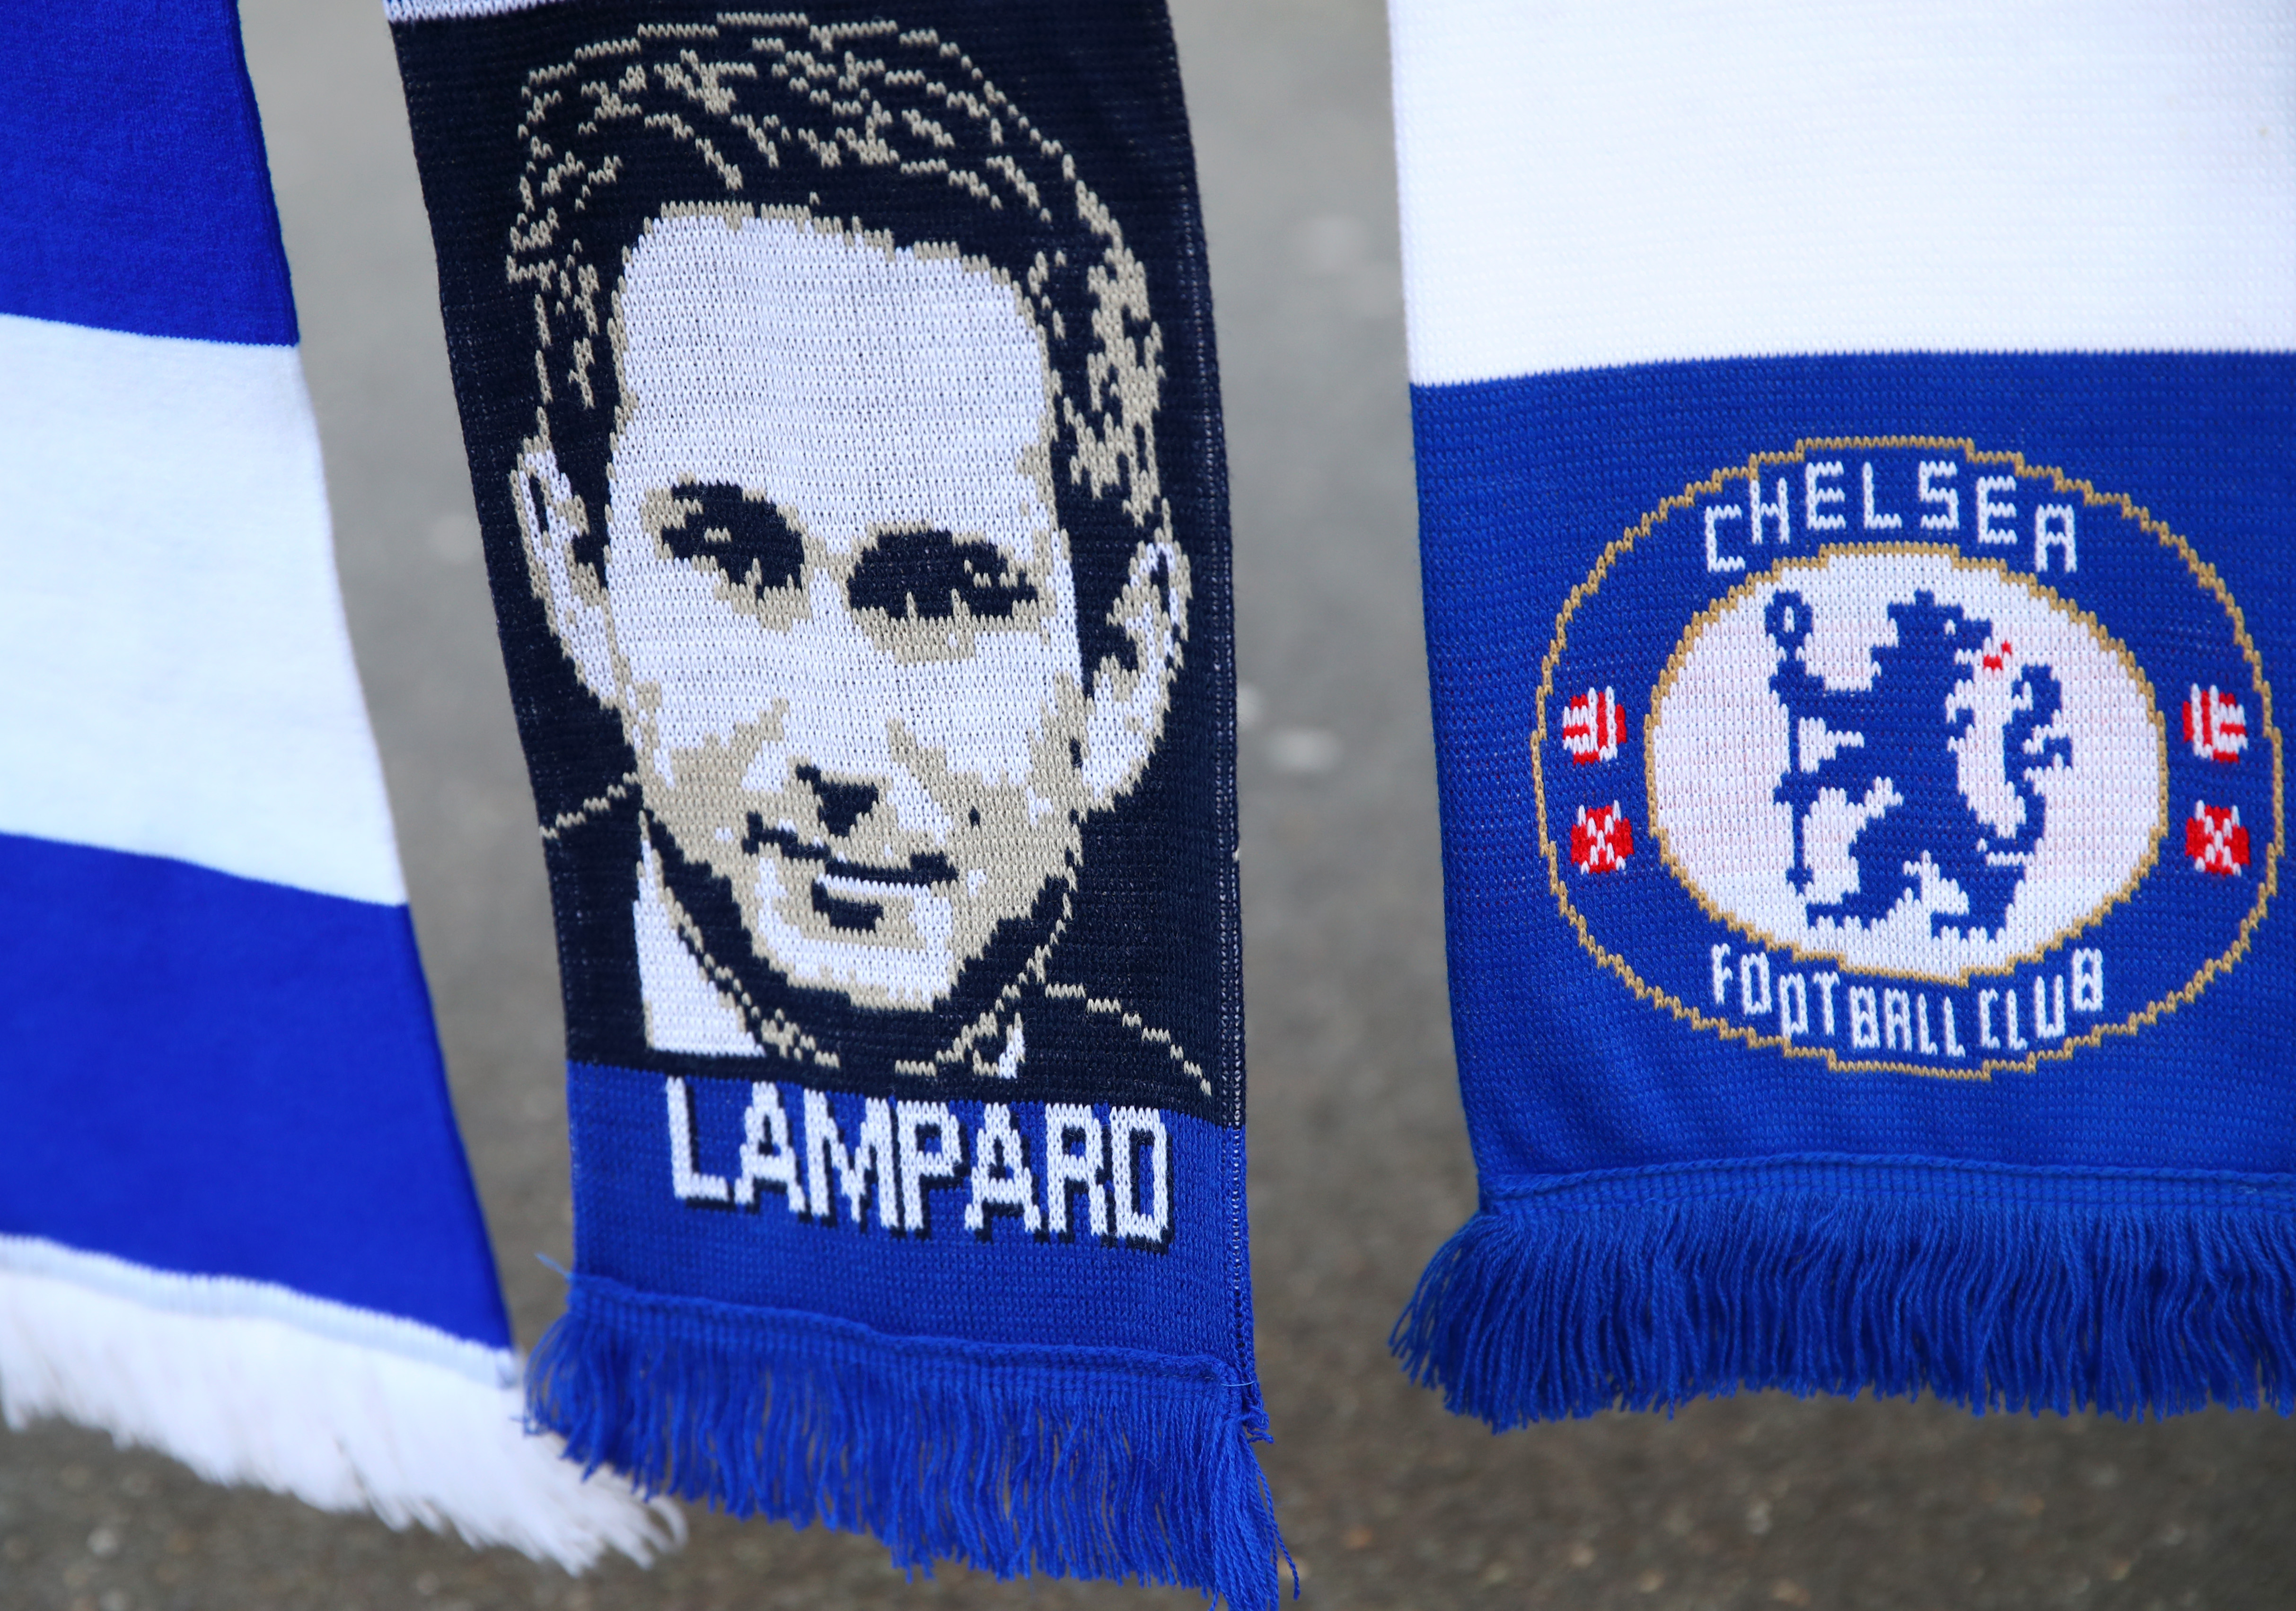 Lampard's first time in the UCL as a manager ended in humiliation. Tomorrow, he goes again. (Picture Courtesy - AFP/Getty Images)